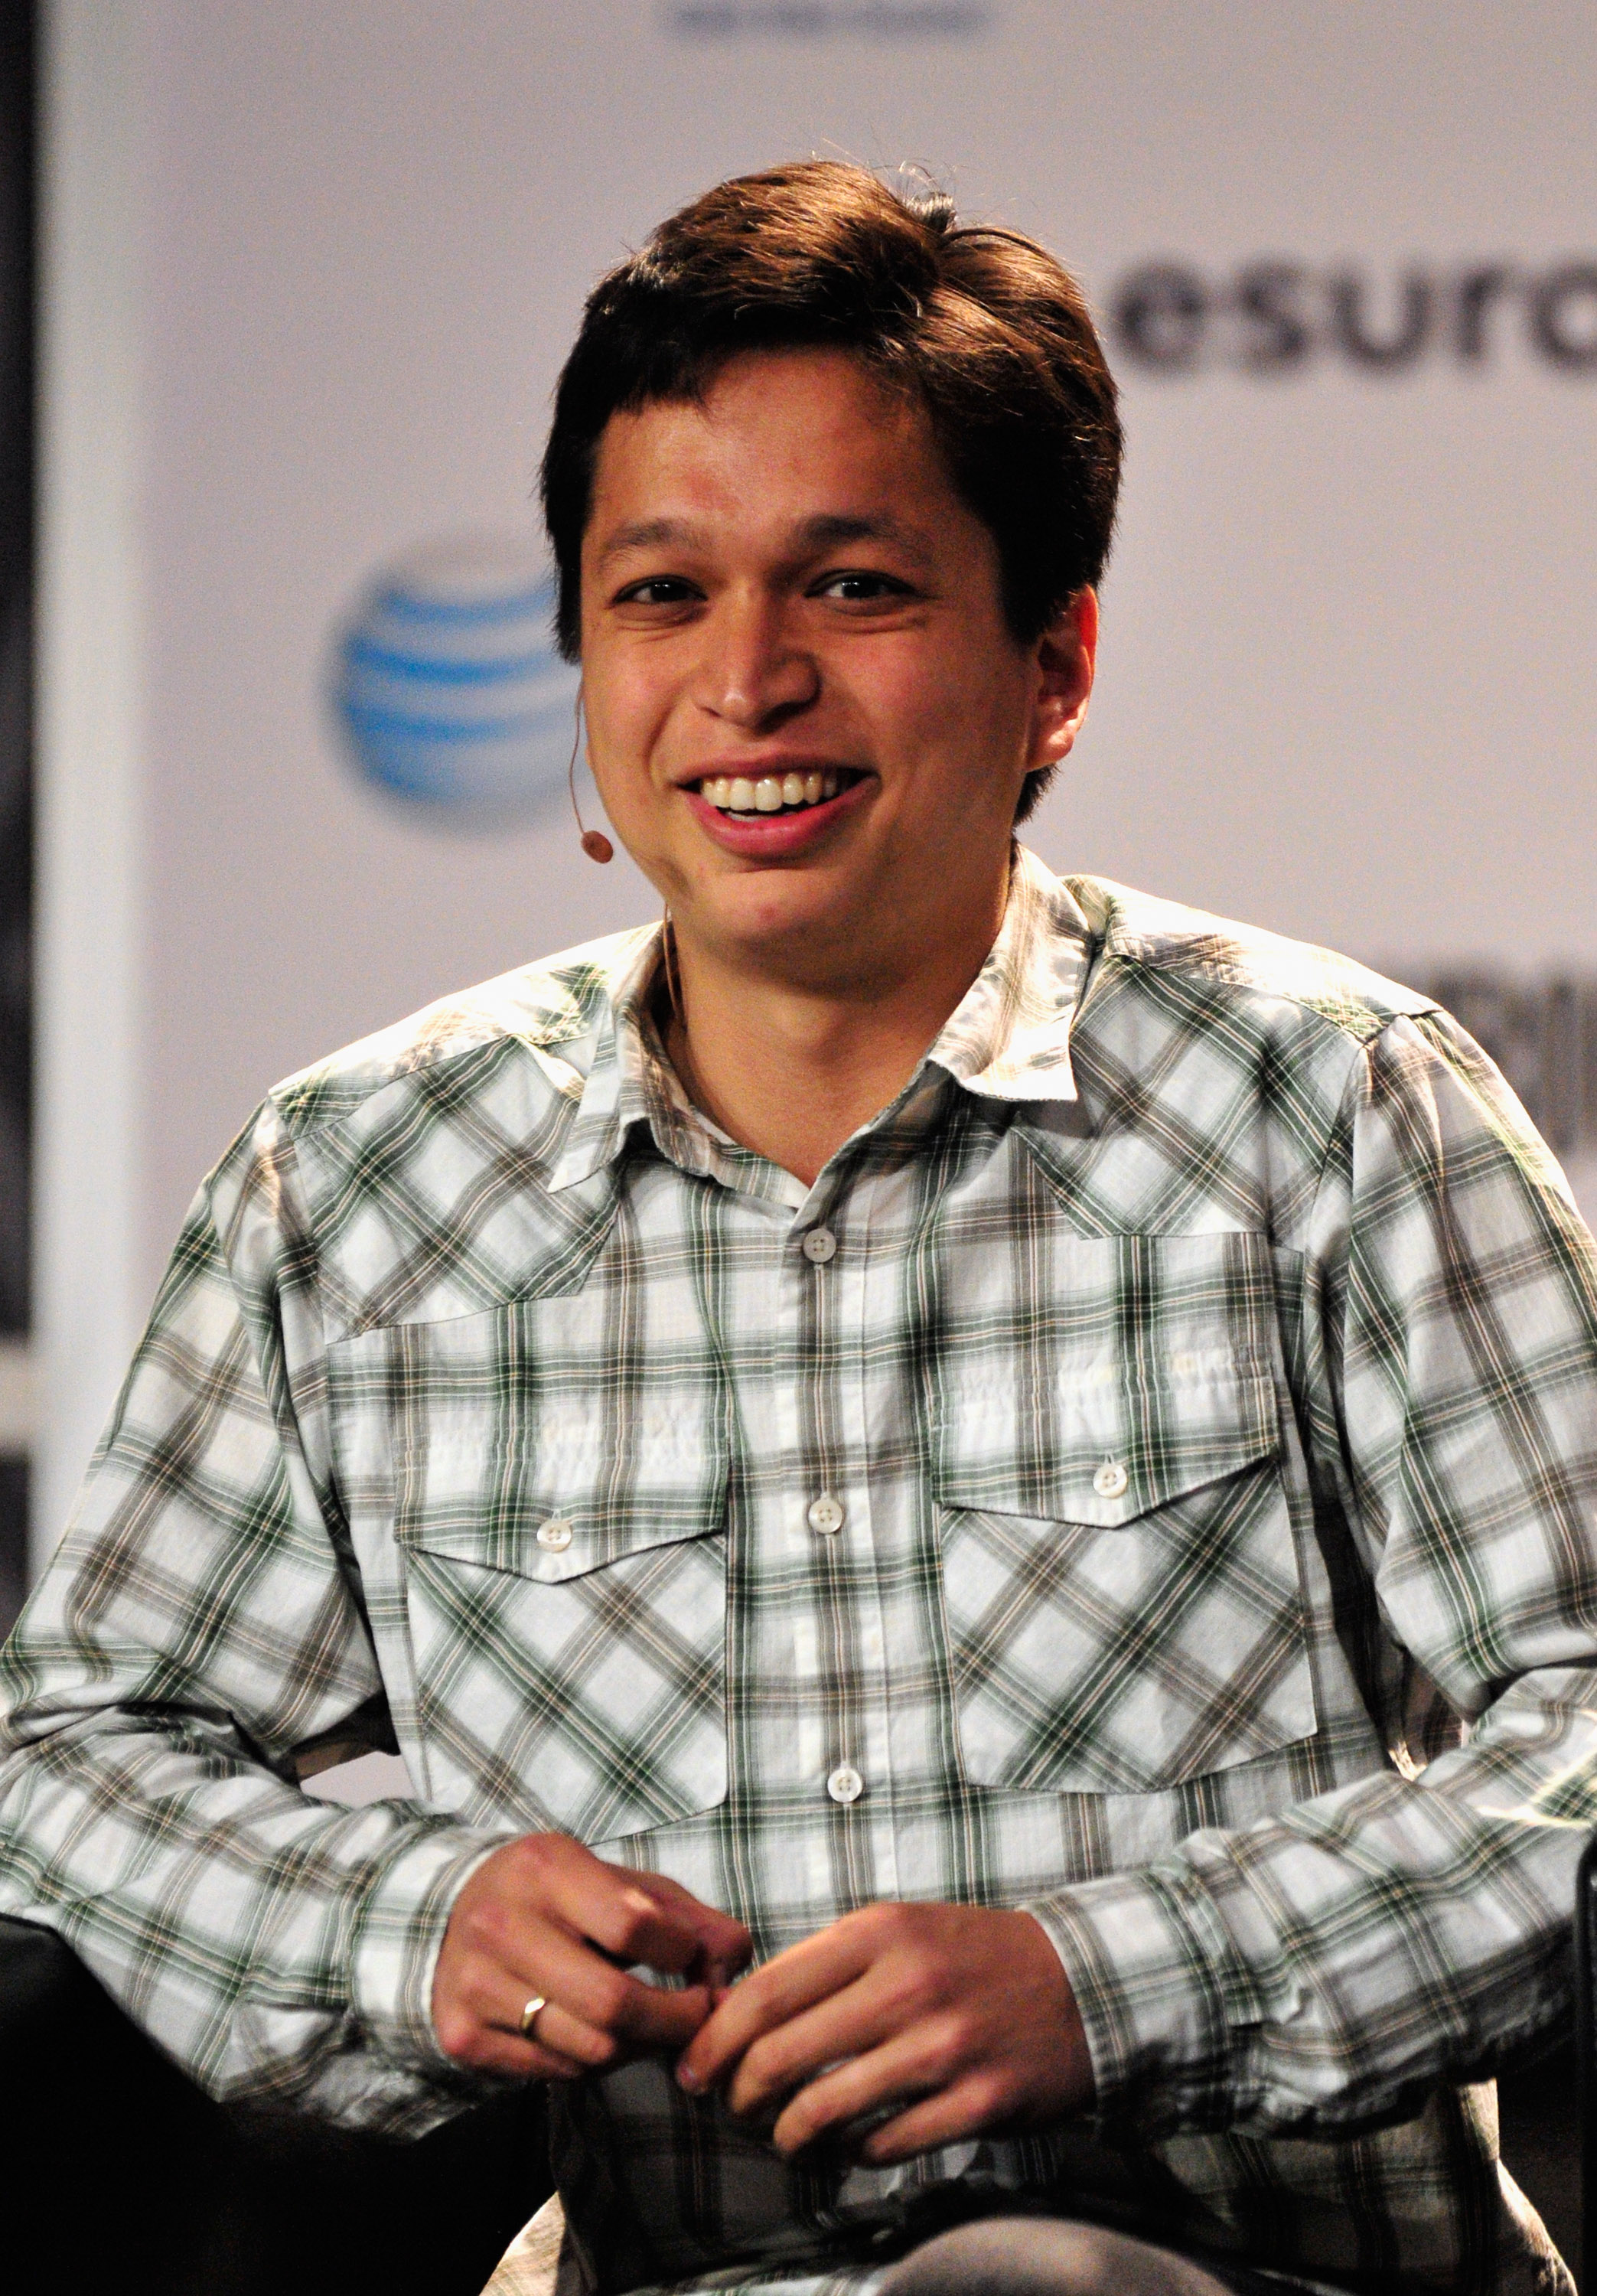 Pinterest Explained: Q&A with Co-Founder Ben Silbermann - 2012 SXSW Music, Film + Interactive Festival